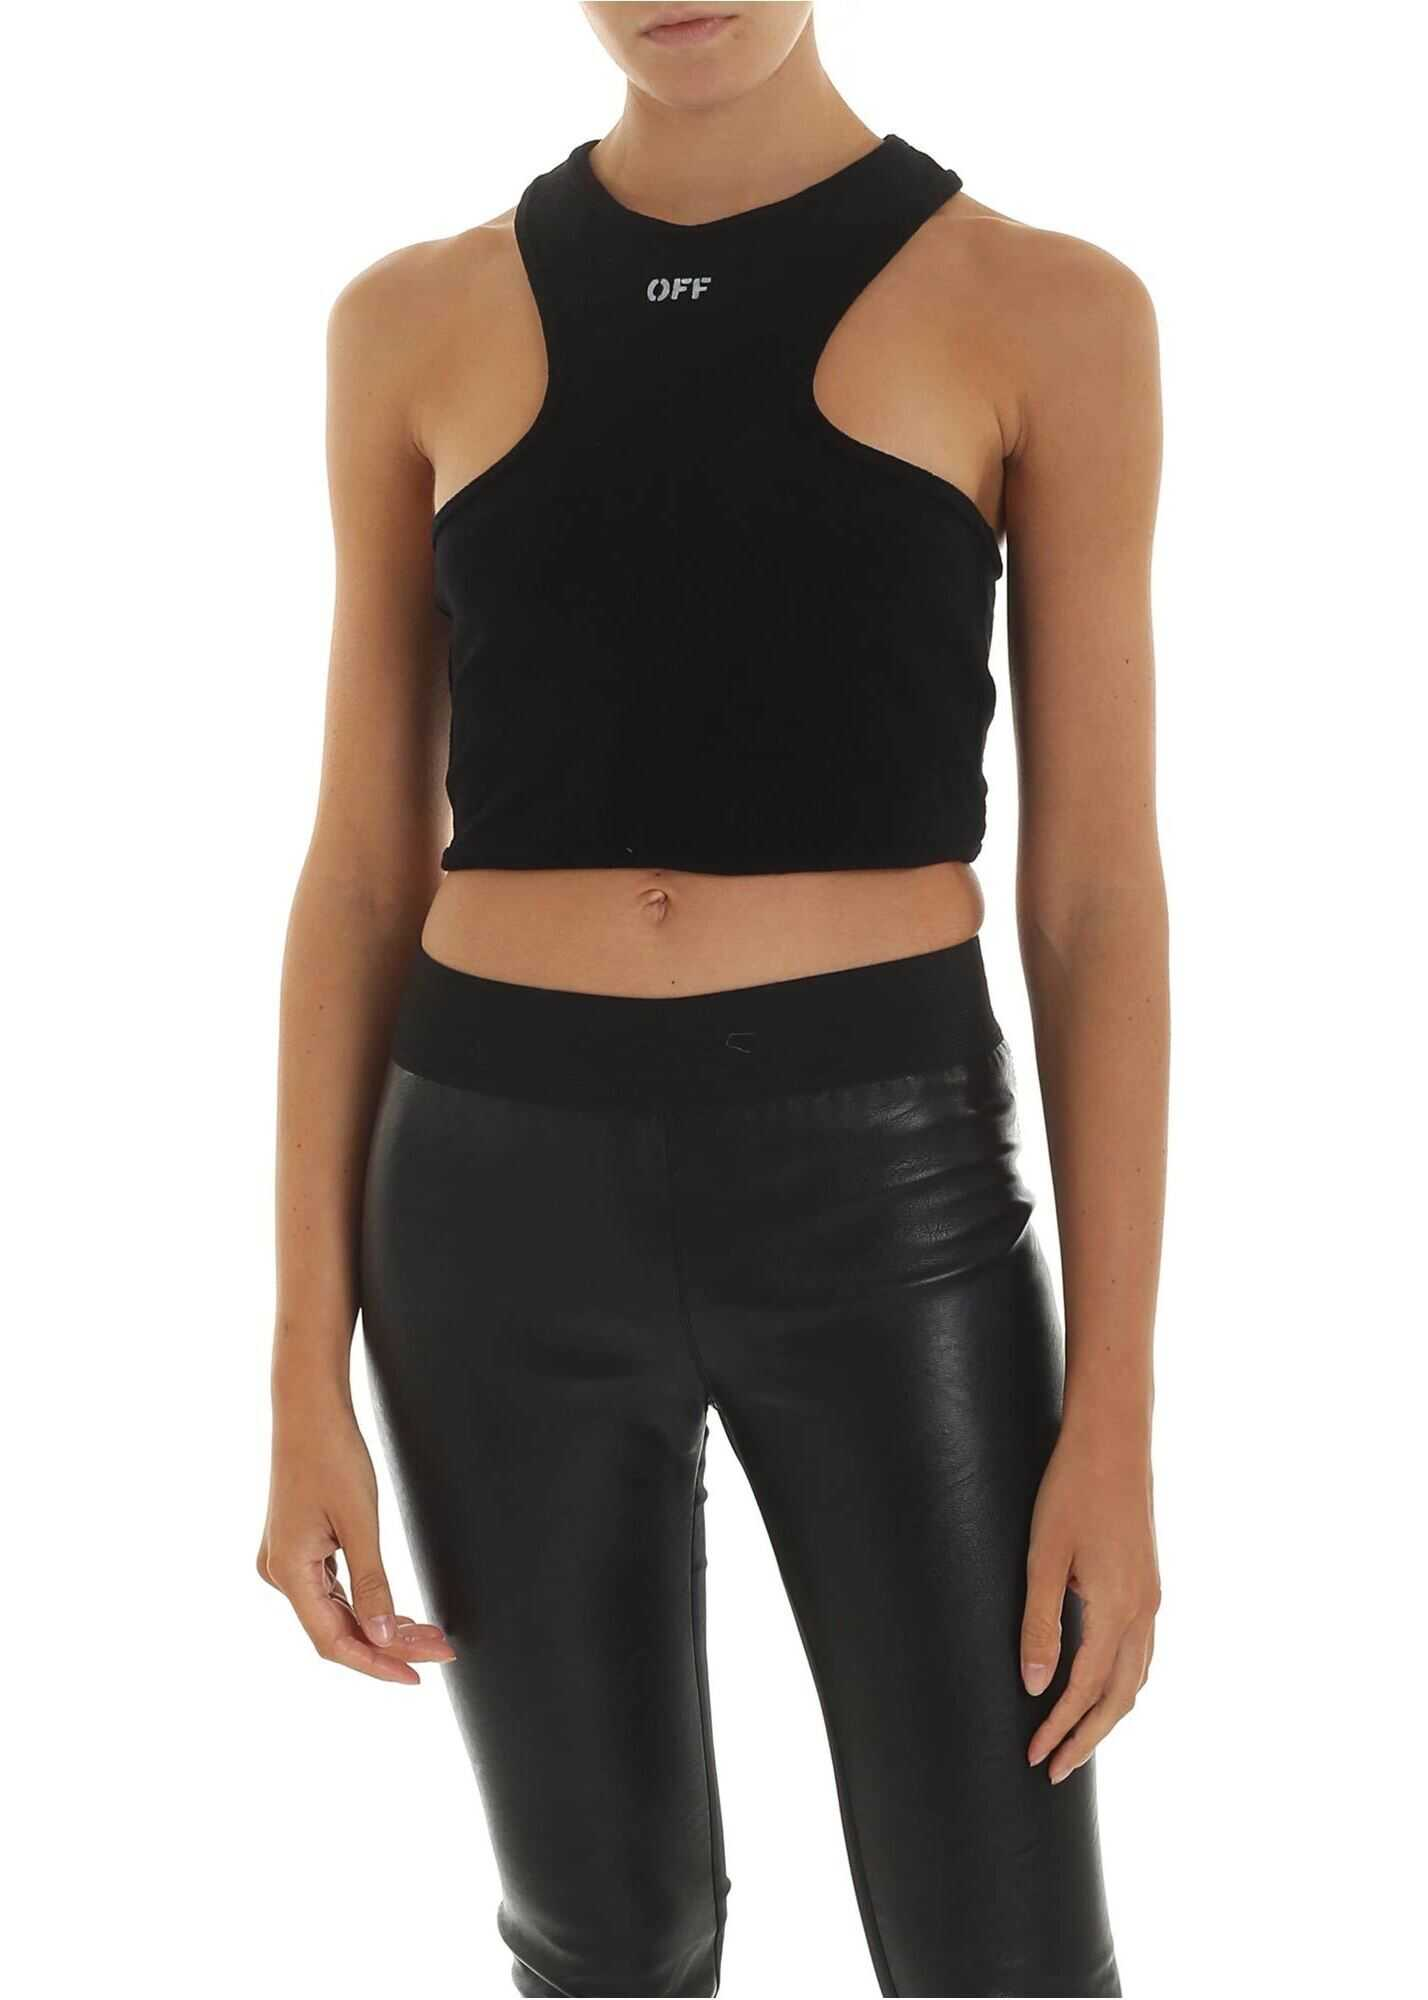 Black Sleeveless Top With Off Print thumbnail